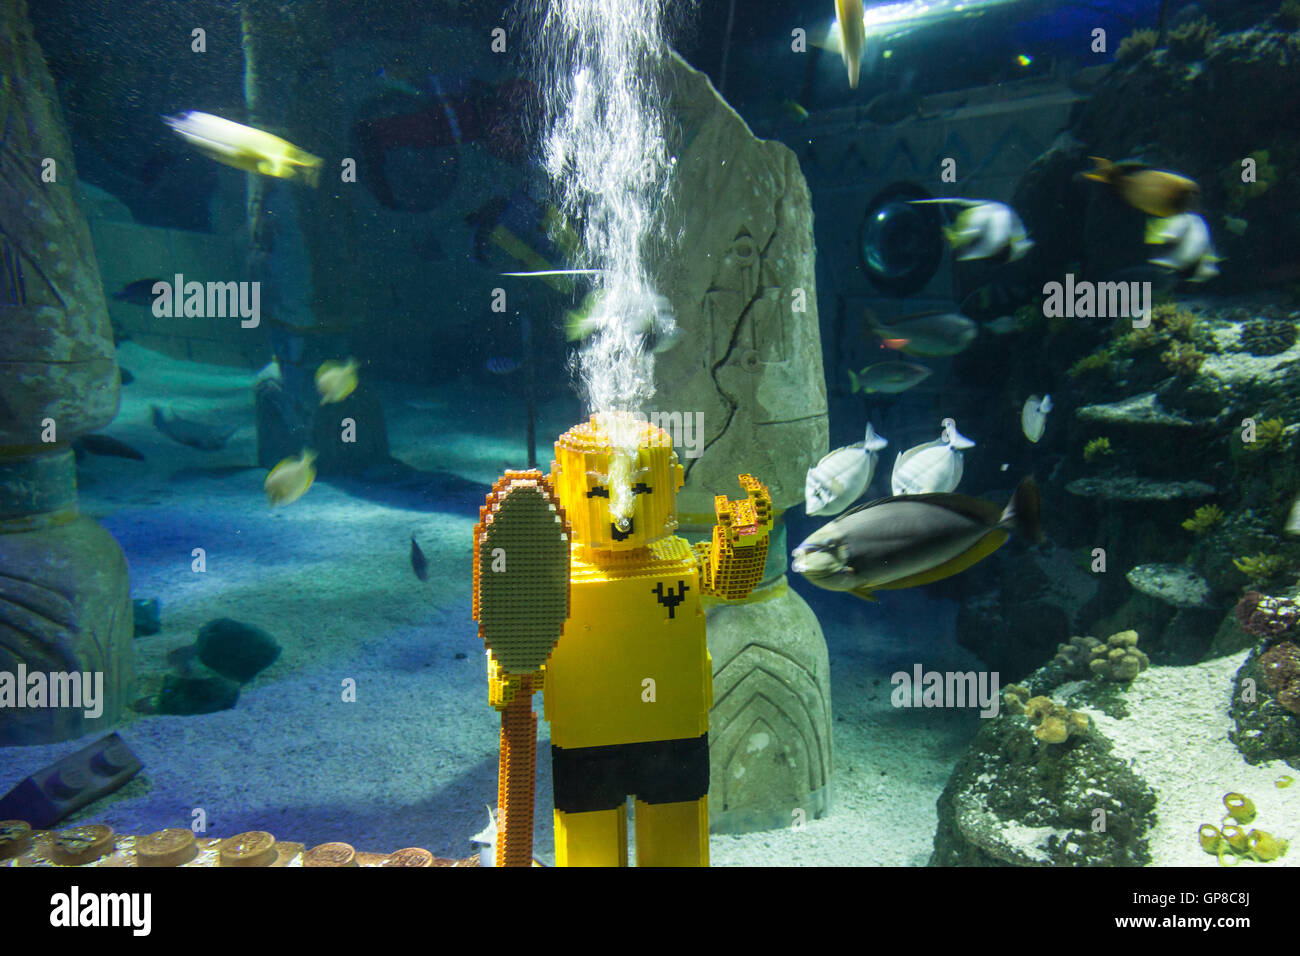 Lego diver at the Legoland Atlantis - Stock Image